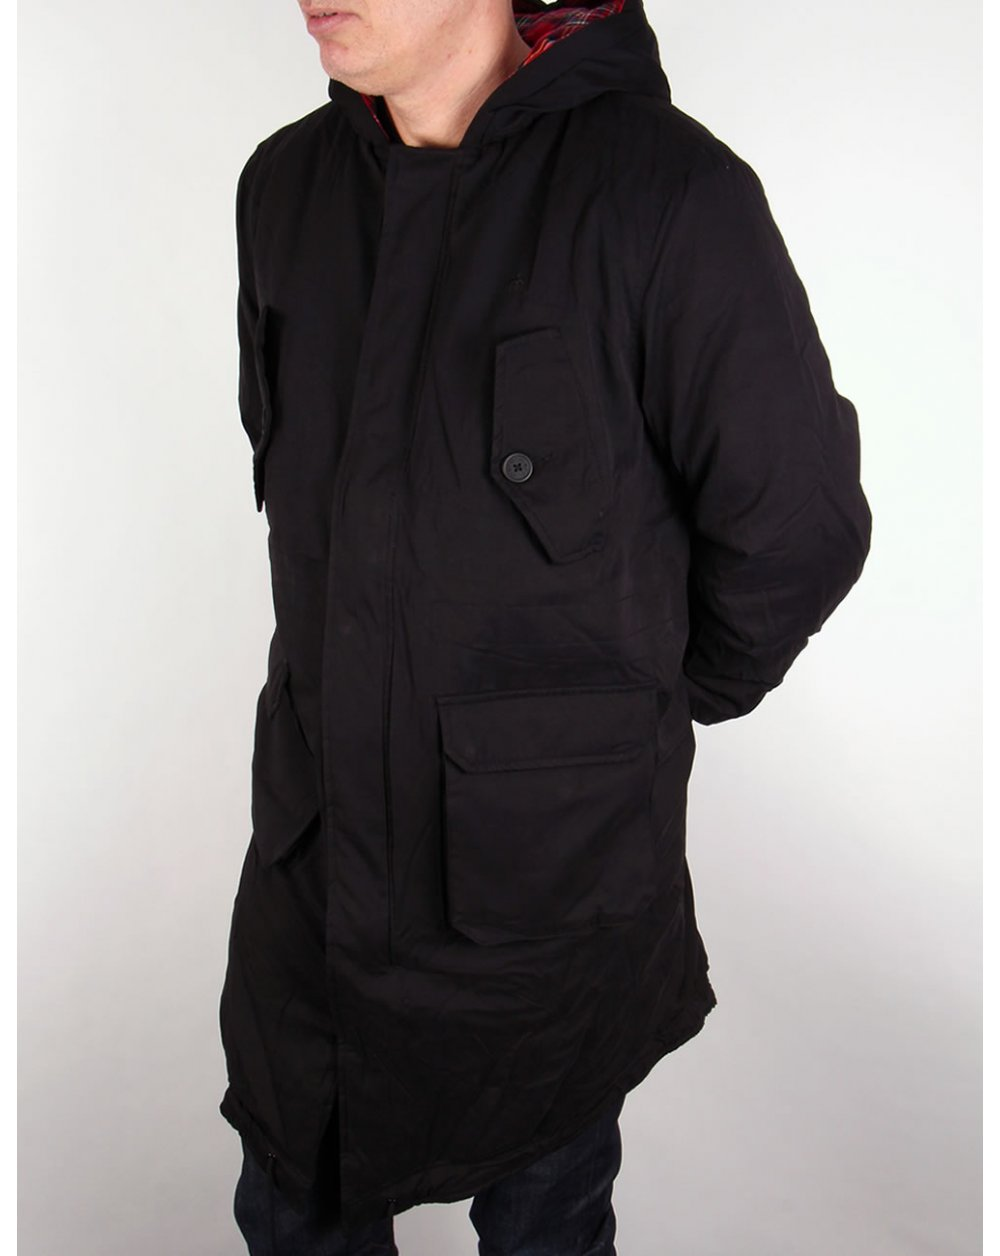 Merc Tobias Parka Black,hooded,jacket,coat,mens,mod